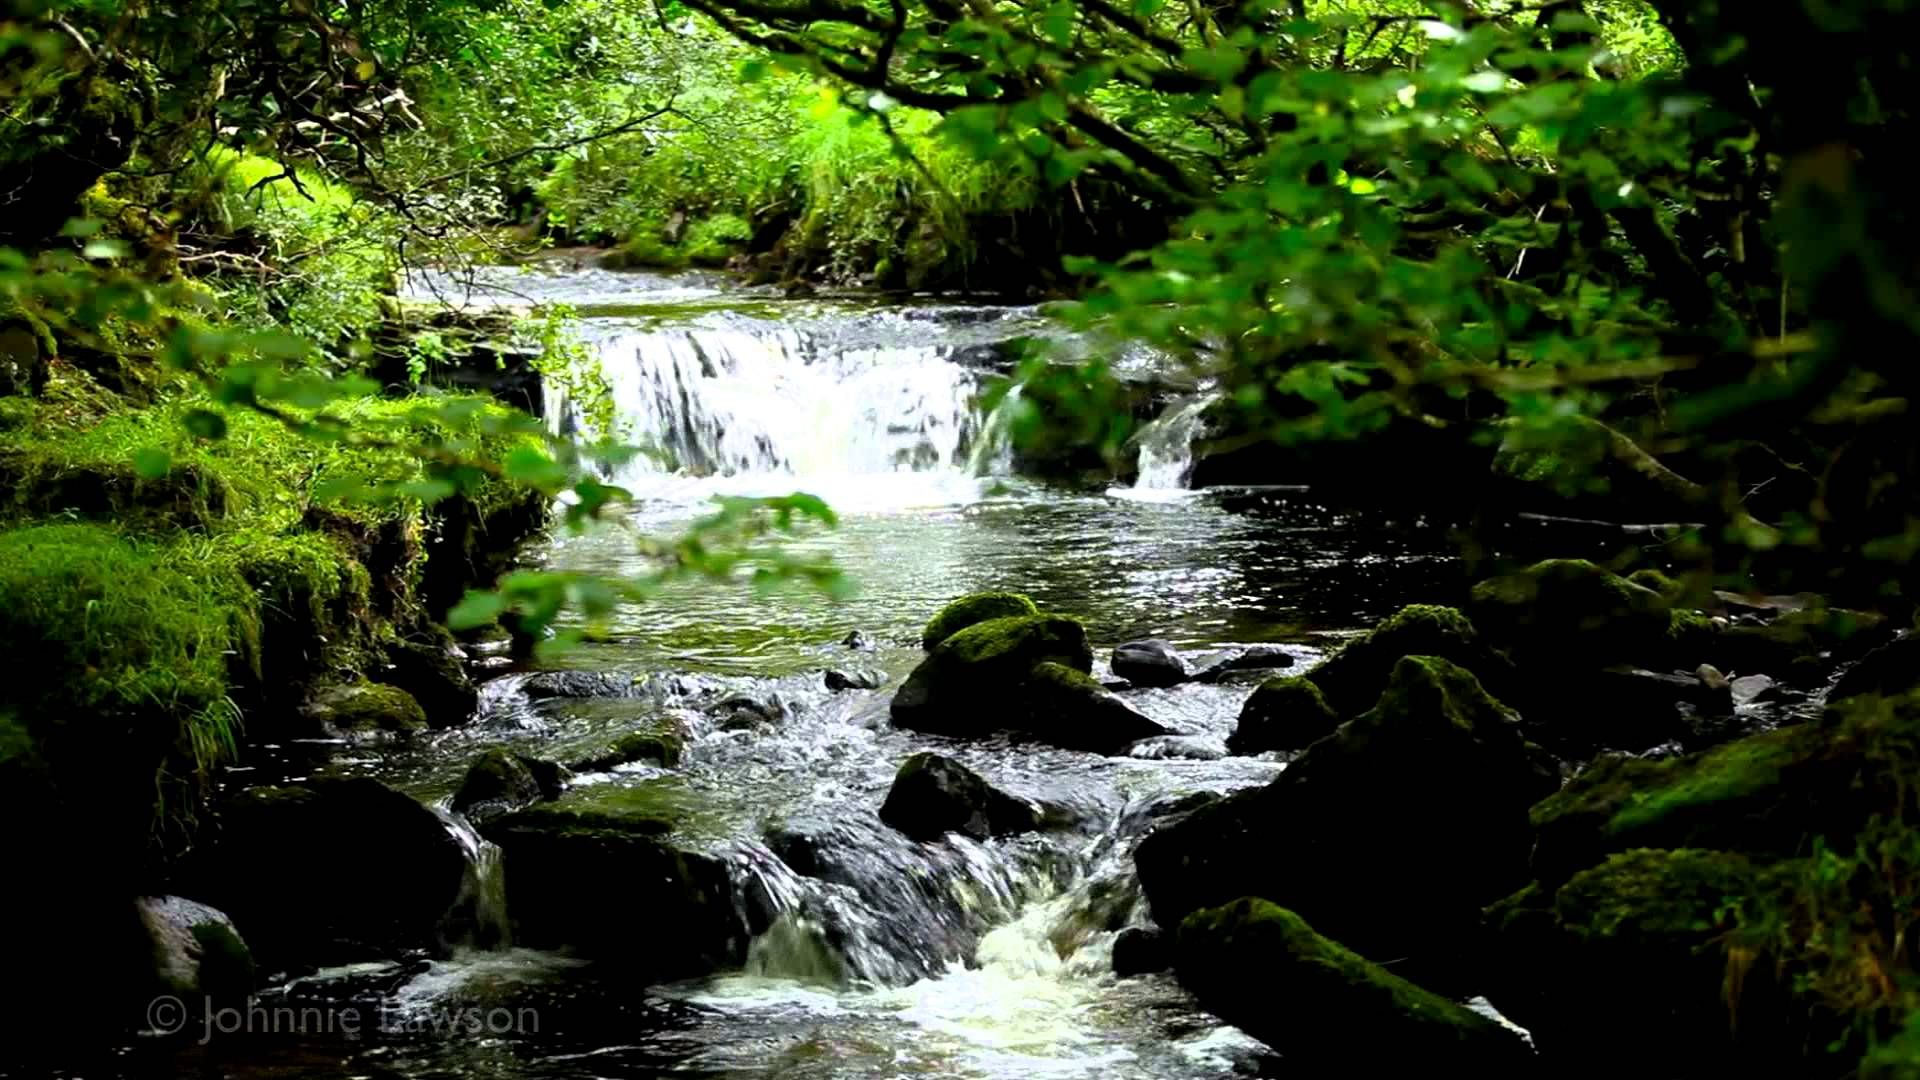 1 Hour Of Soothing Nature Sounds In Hd Relaxing Sound Of Water And Birdsong Meditation Johnnielawson Nature Sounds Classical Music Waterfall